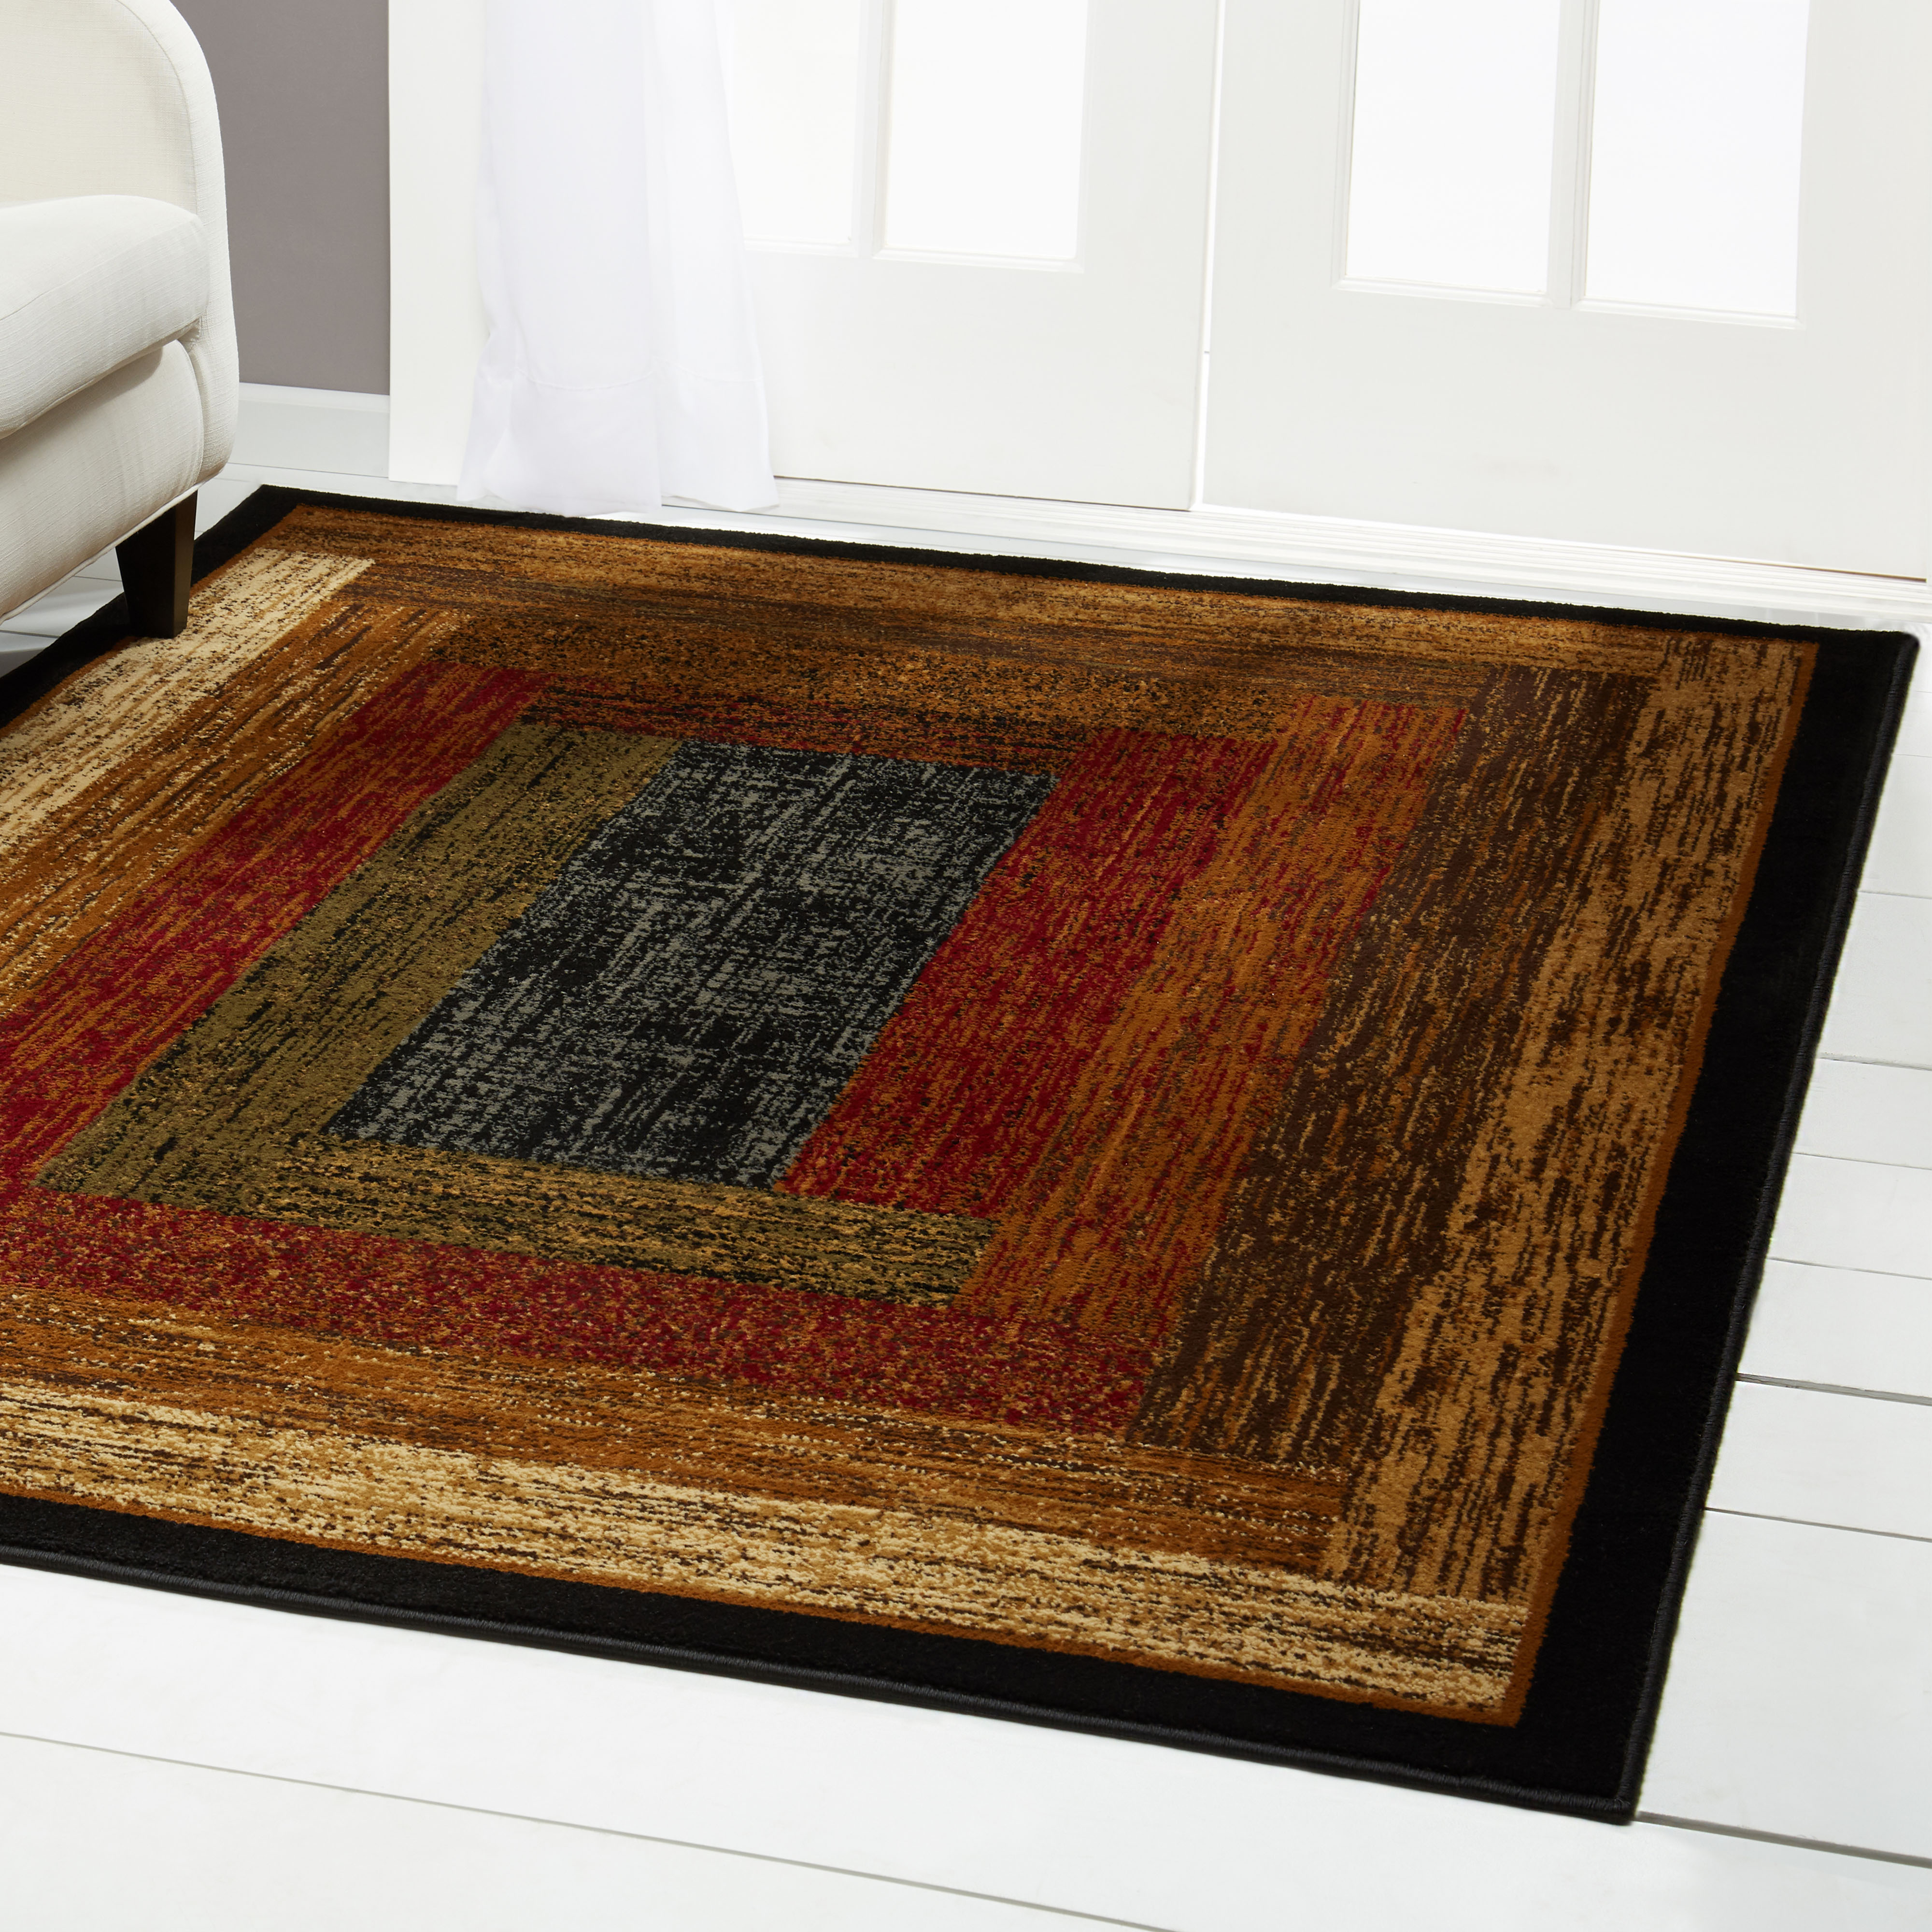 Home Dynamix Royalty Collection Geometric Area Rug for Modern Home Decor by Home Dynamix